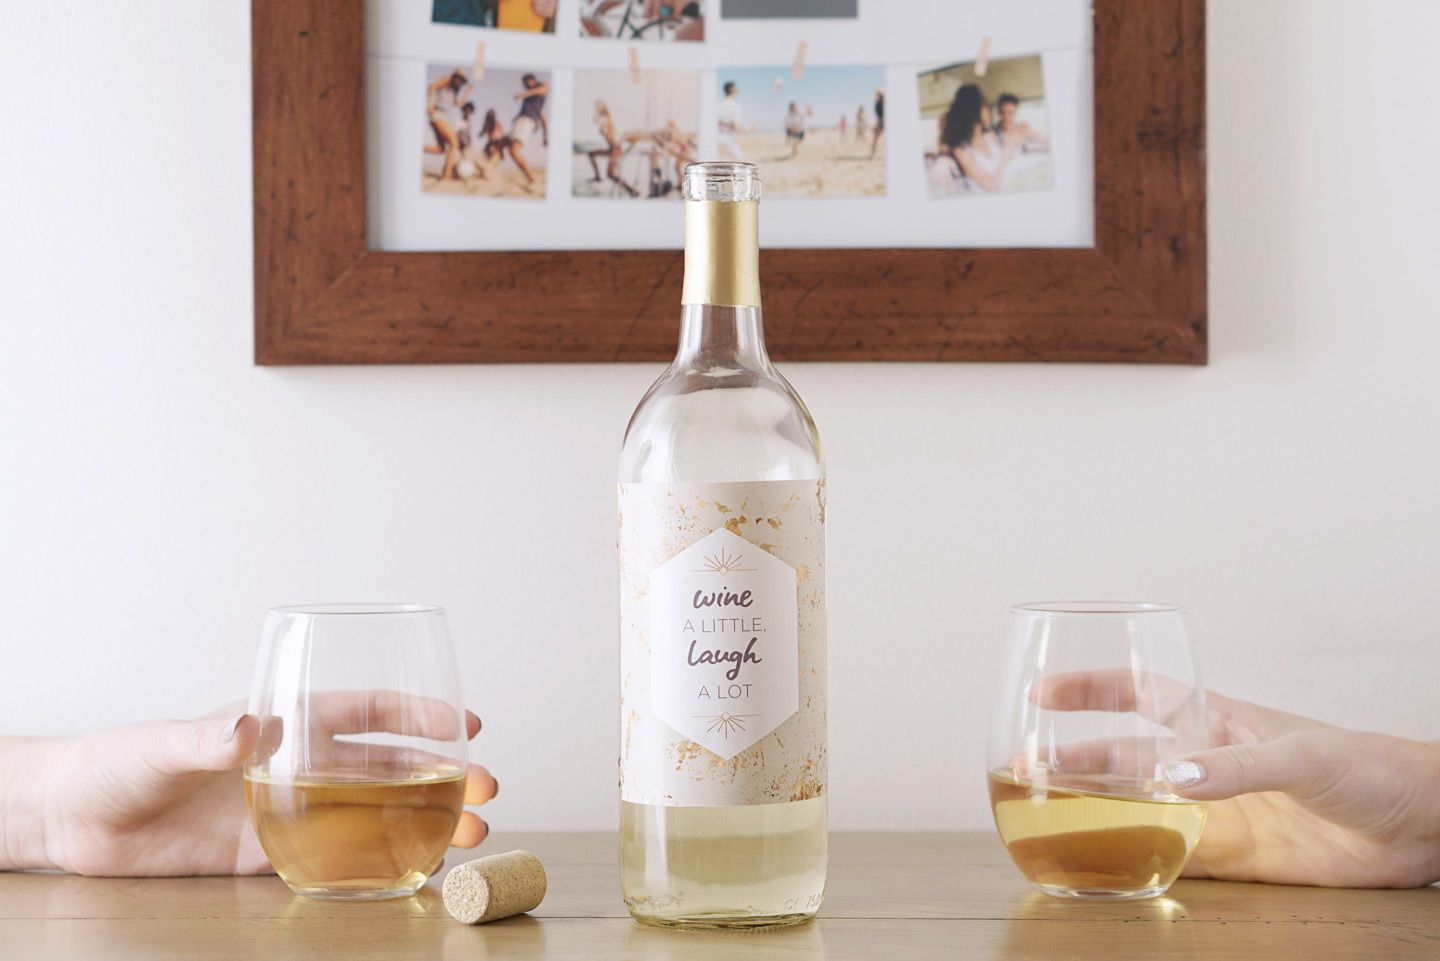 A bottle of white wine on a table with a custom label